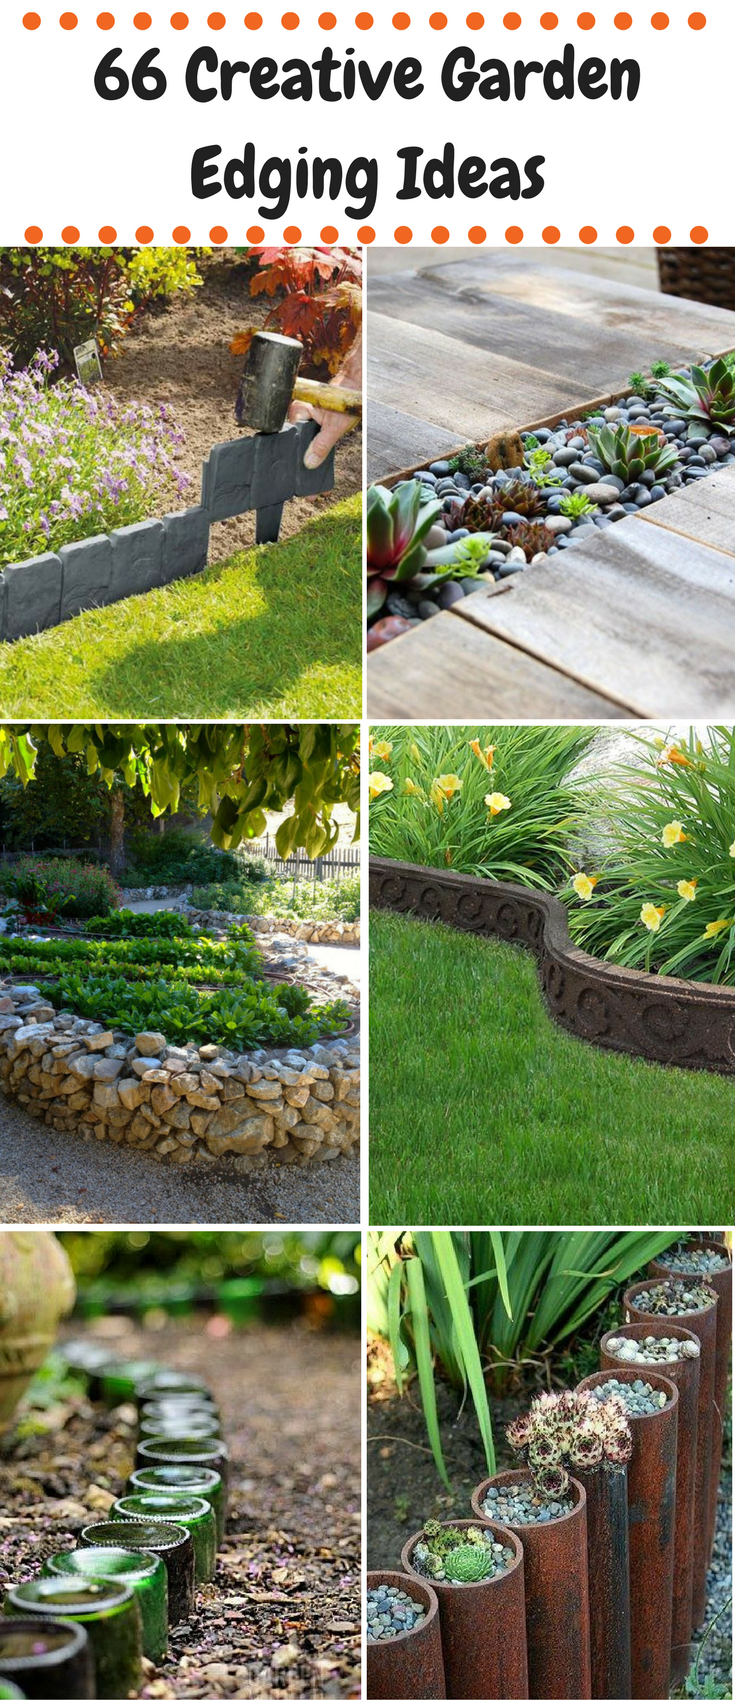 66 Creative Garden Edging Ideas - using rocks, hoses, wine bottles ...